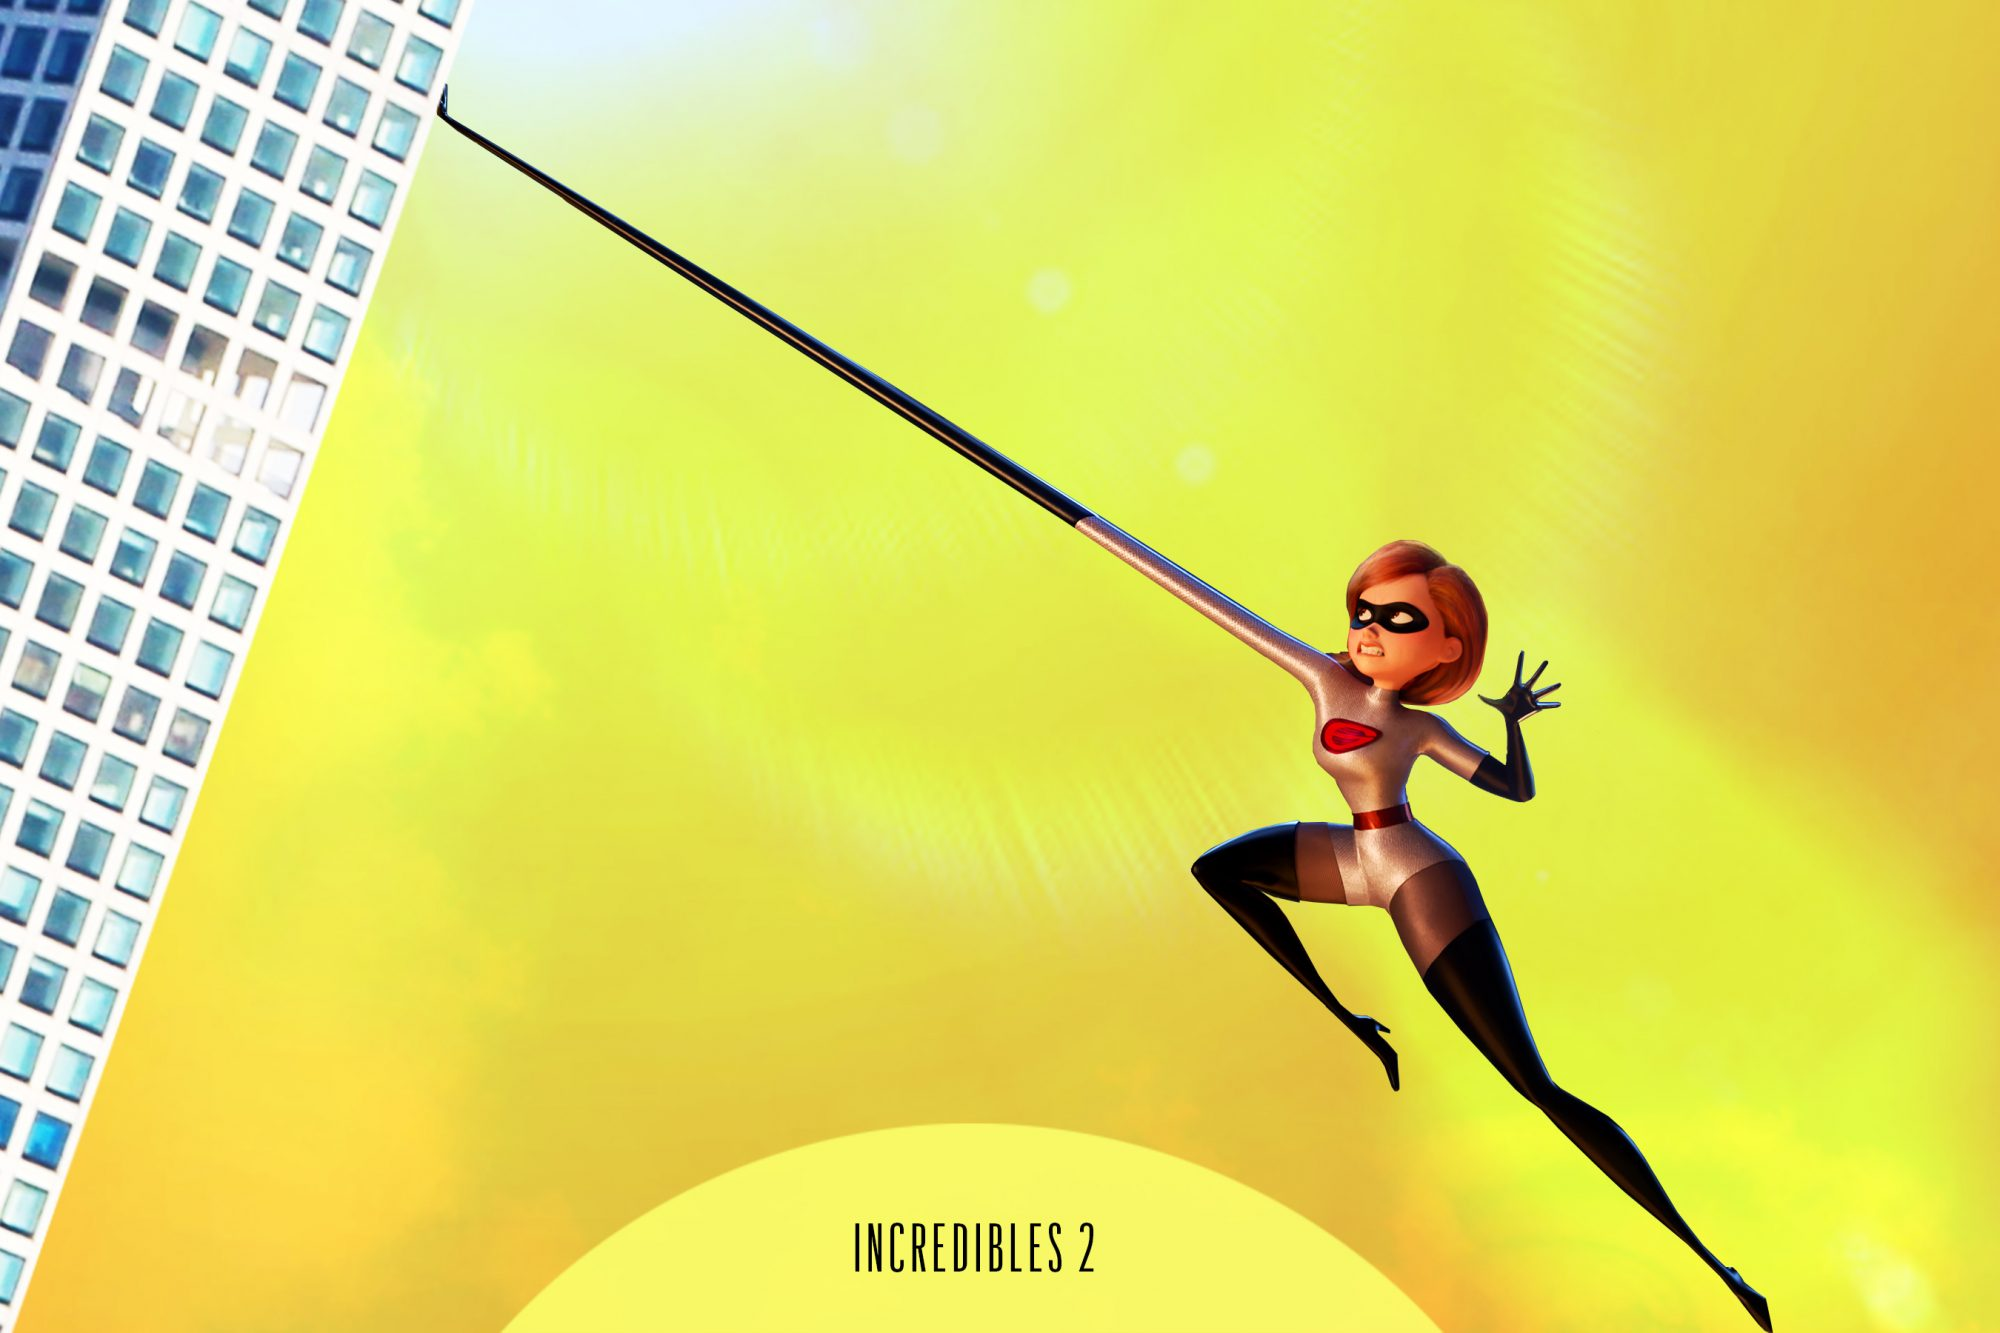 WORST FASHION MOMENT: Elastigirl in Incredibles 2